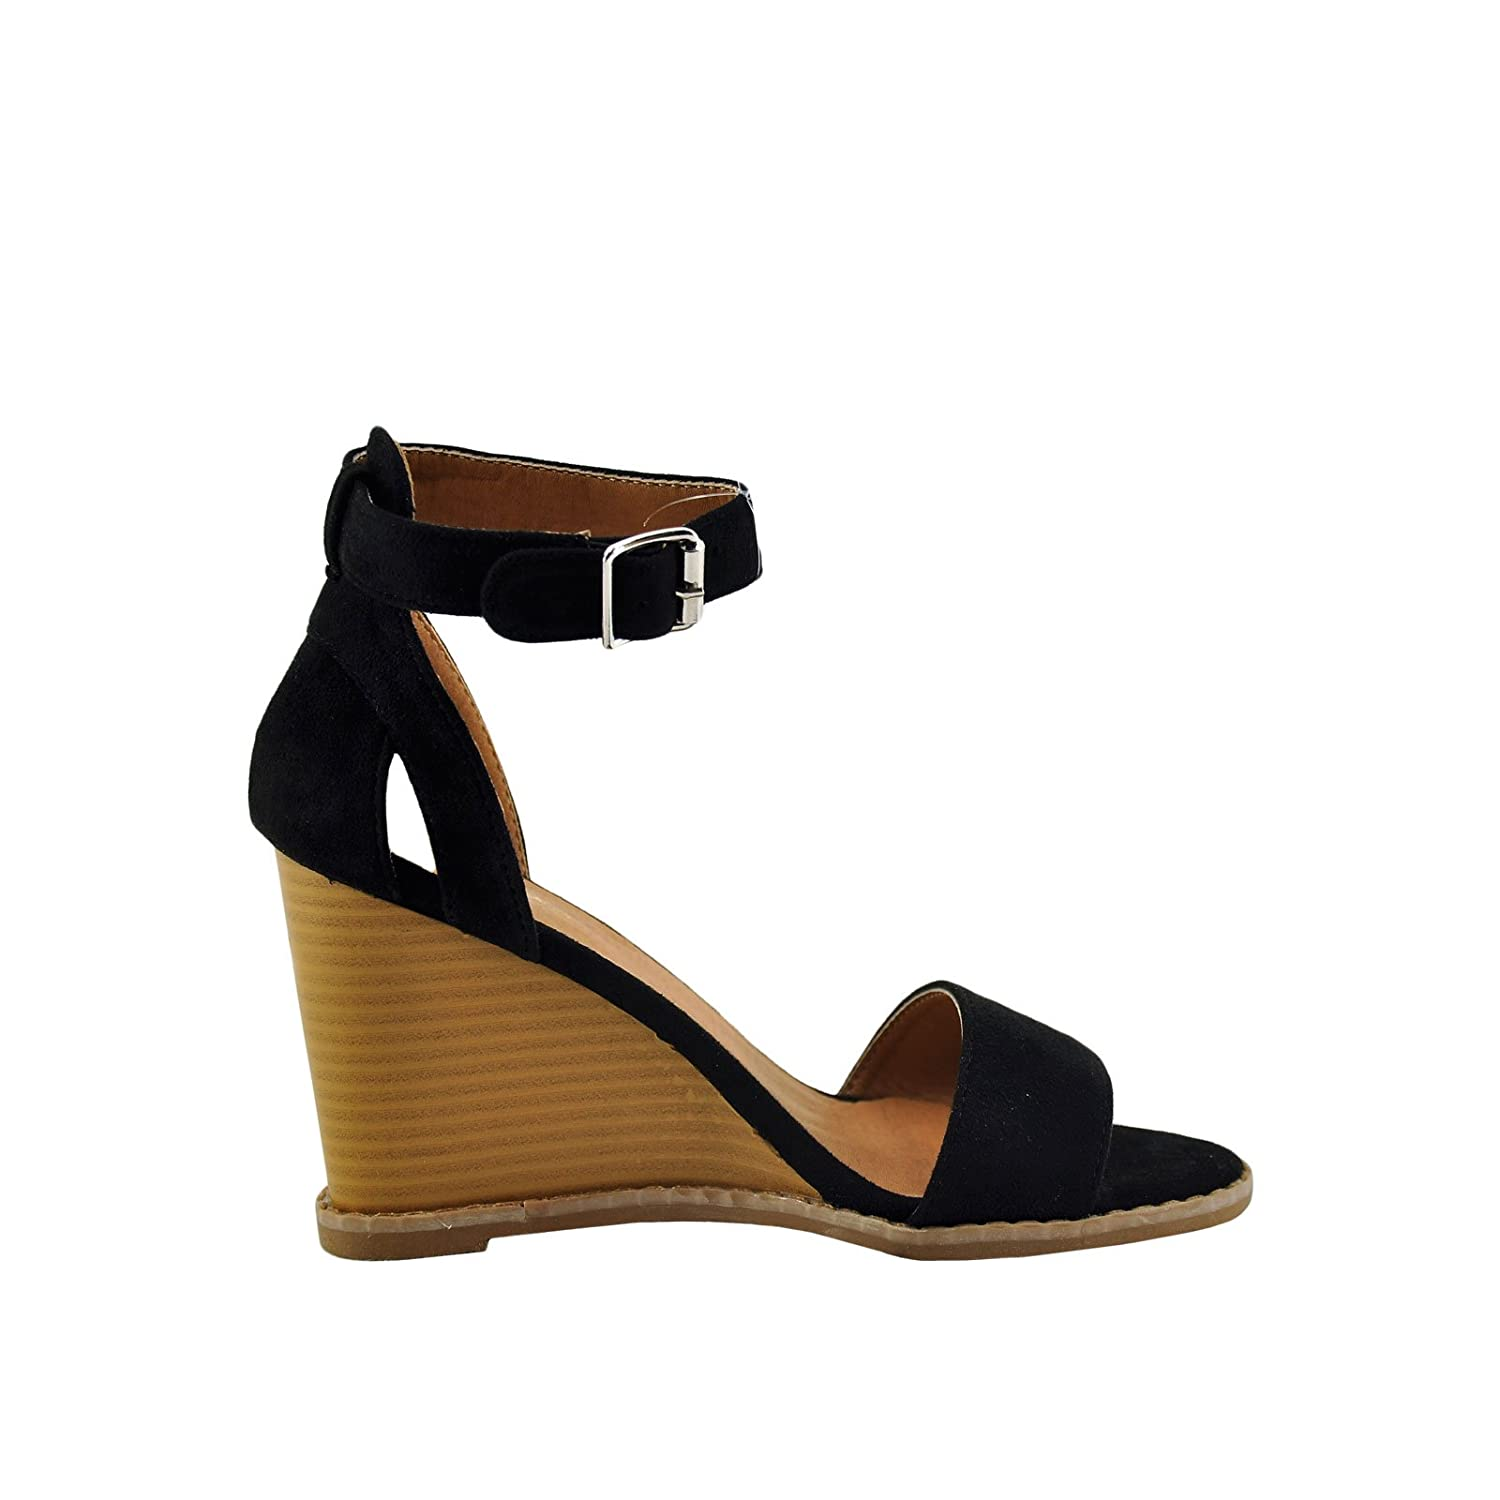 76ca44401d2506 Qupid Finley 01 Women s Open Toe Toe Toe Ankle Strap Stacked Wedge  B076VG986V 6 B(M) US